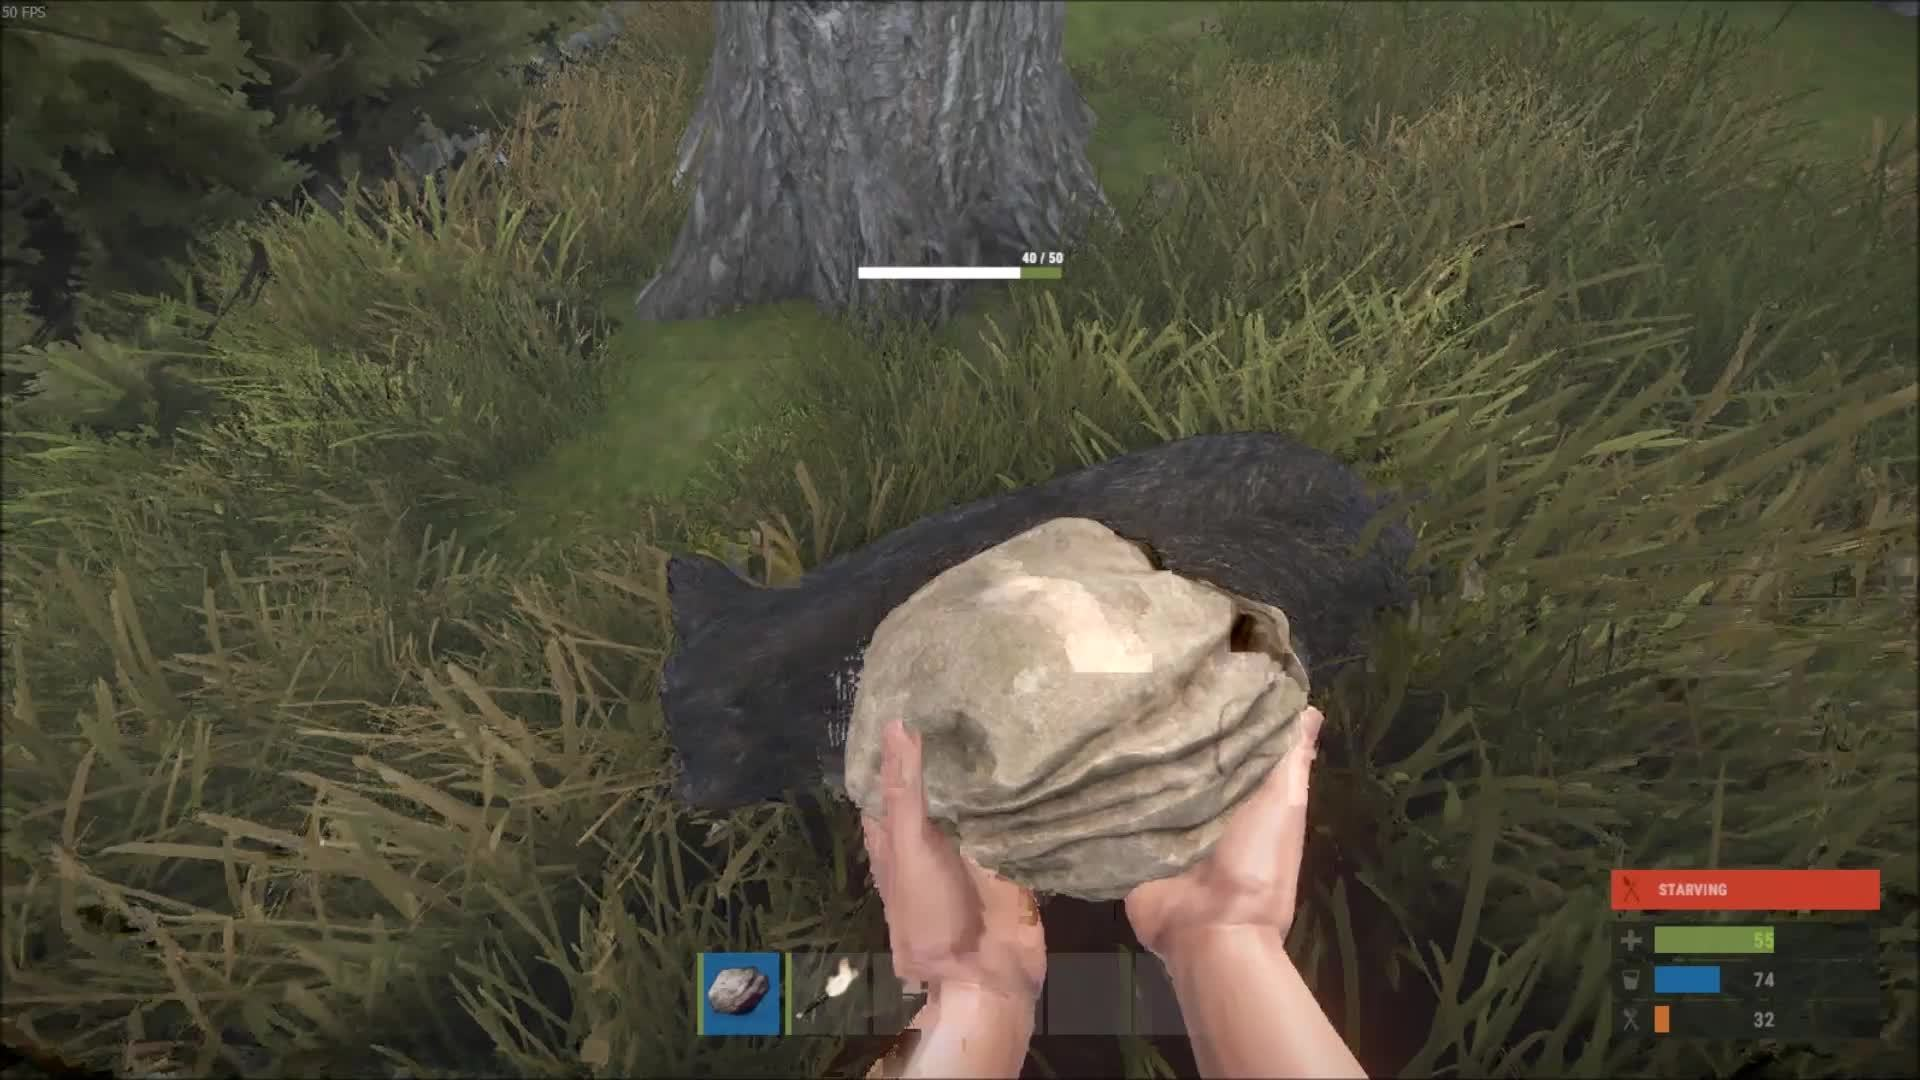 playrust, Rust on a AMD Processor GIFs